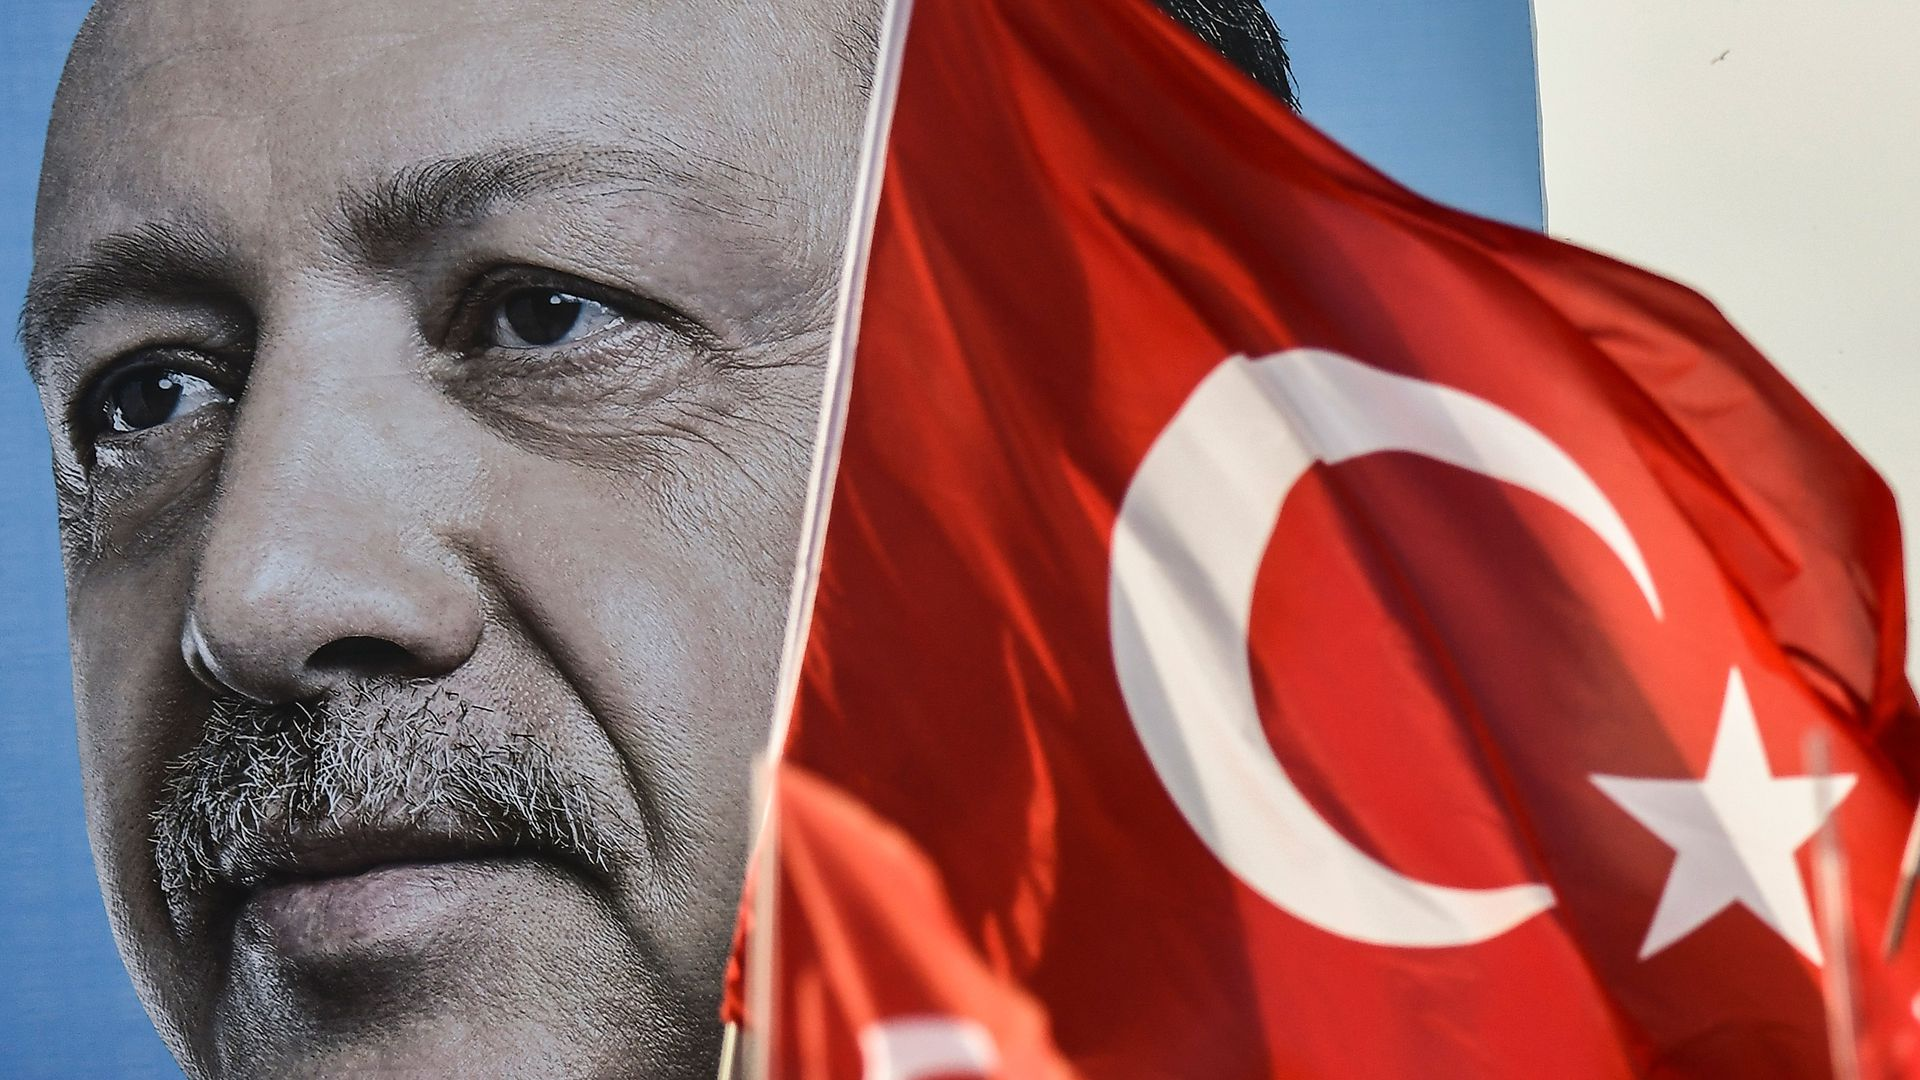 A giant campaign poster of Turkey's President Erdogan next to a Turkish flag.